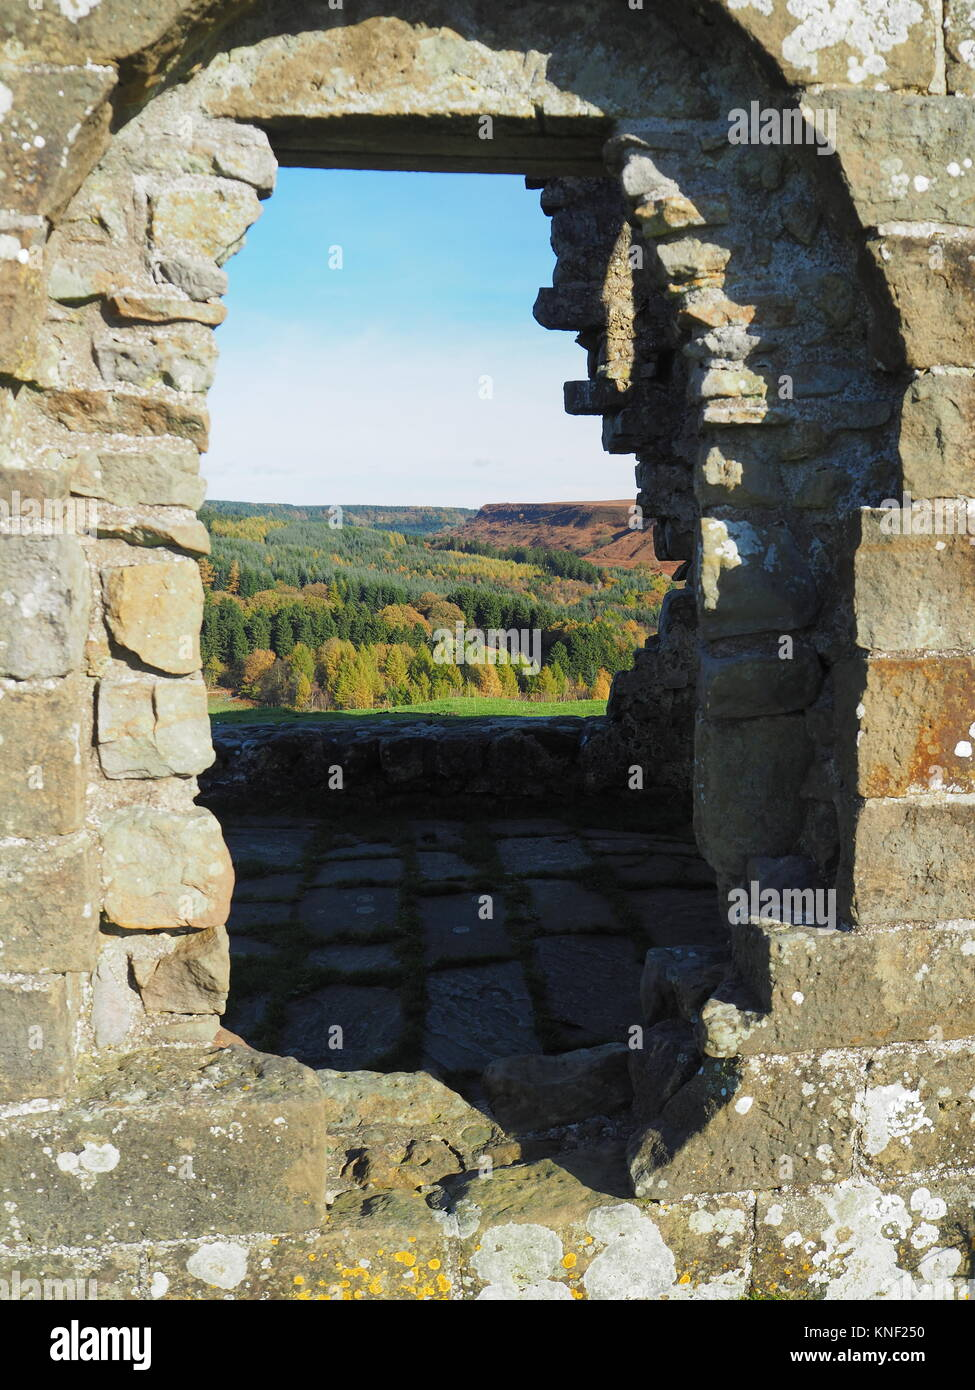 View through a window of the ruins of Skelton Tower - Stock Image